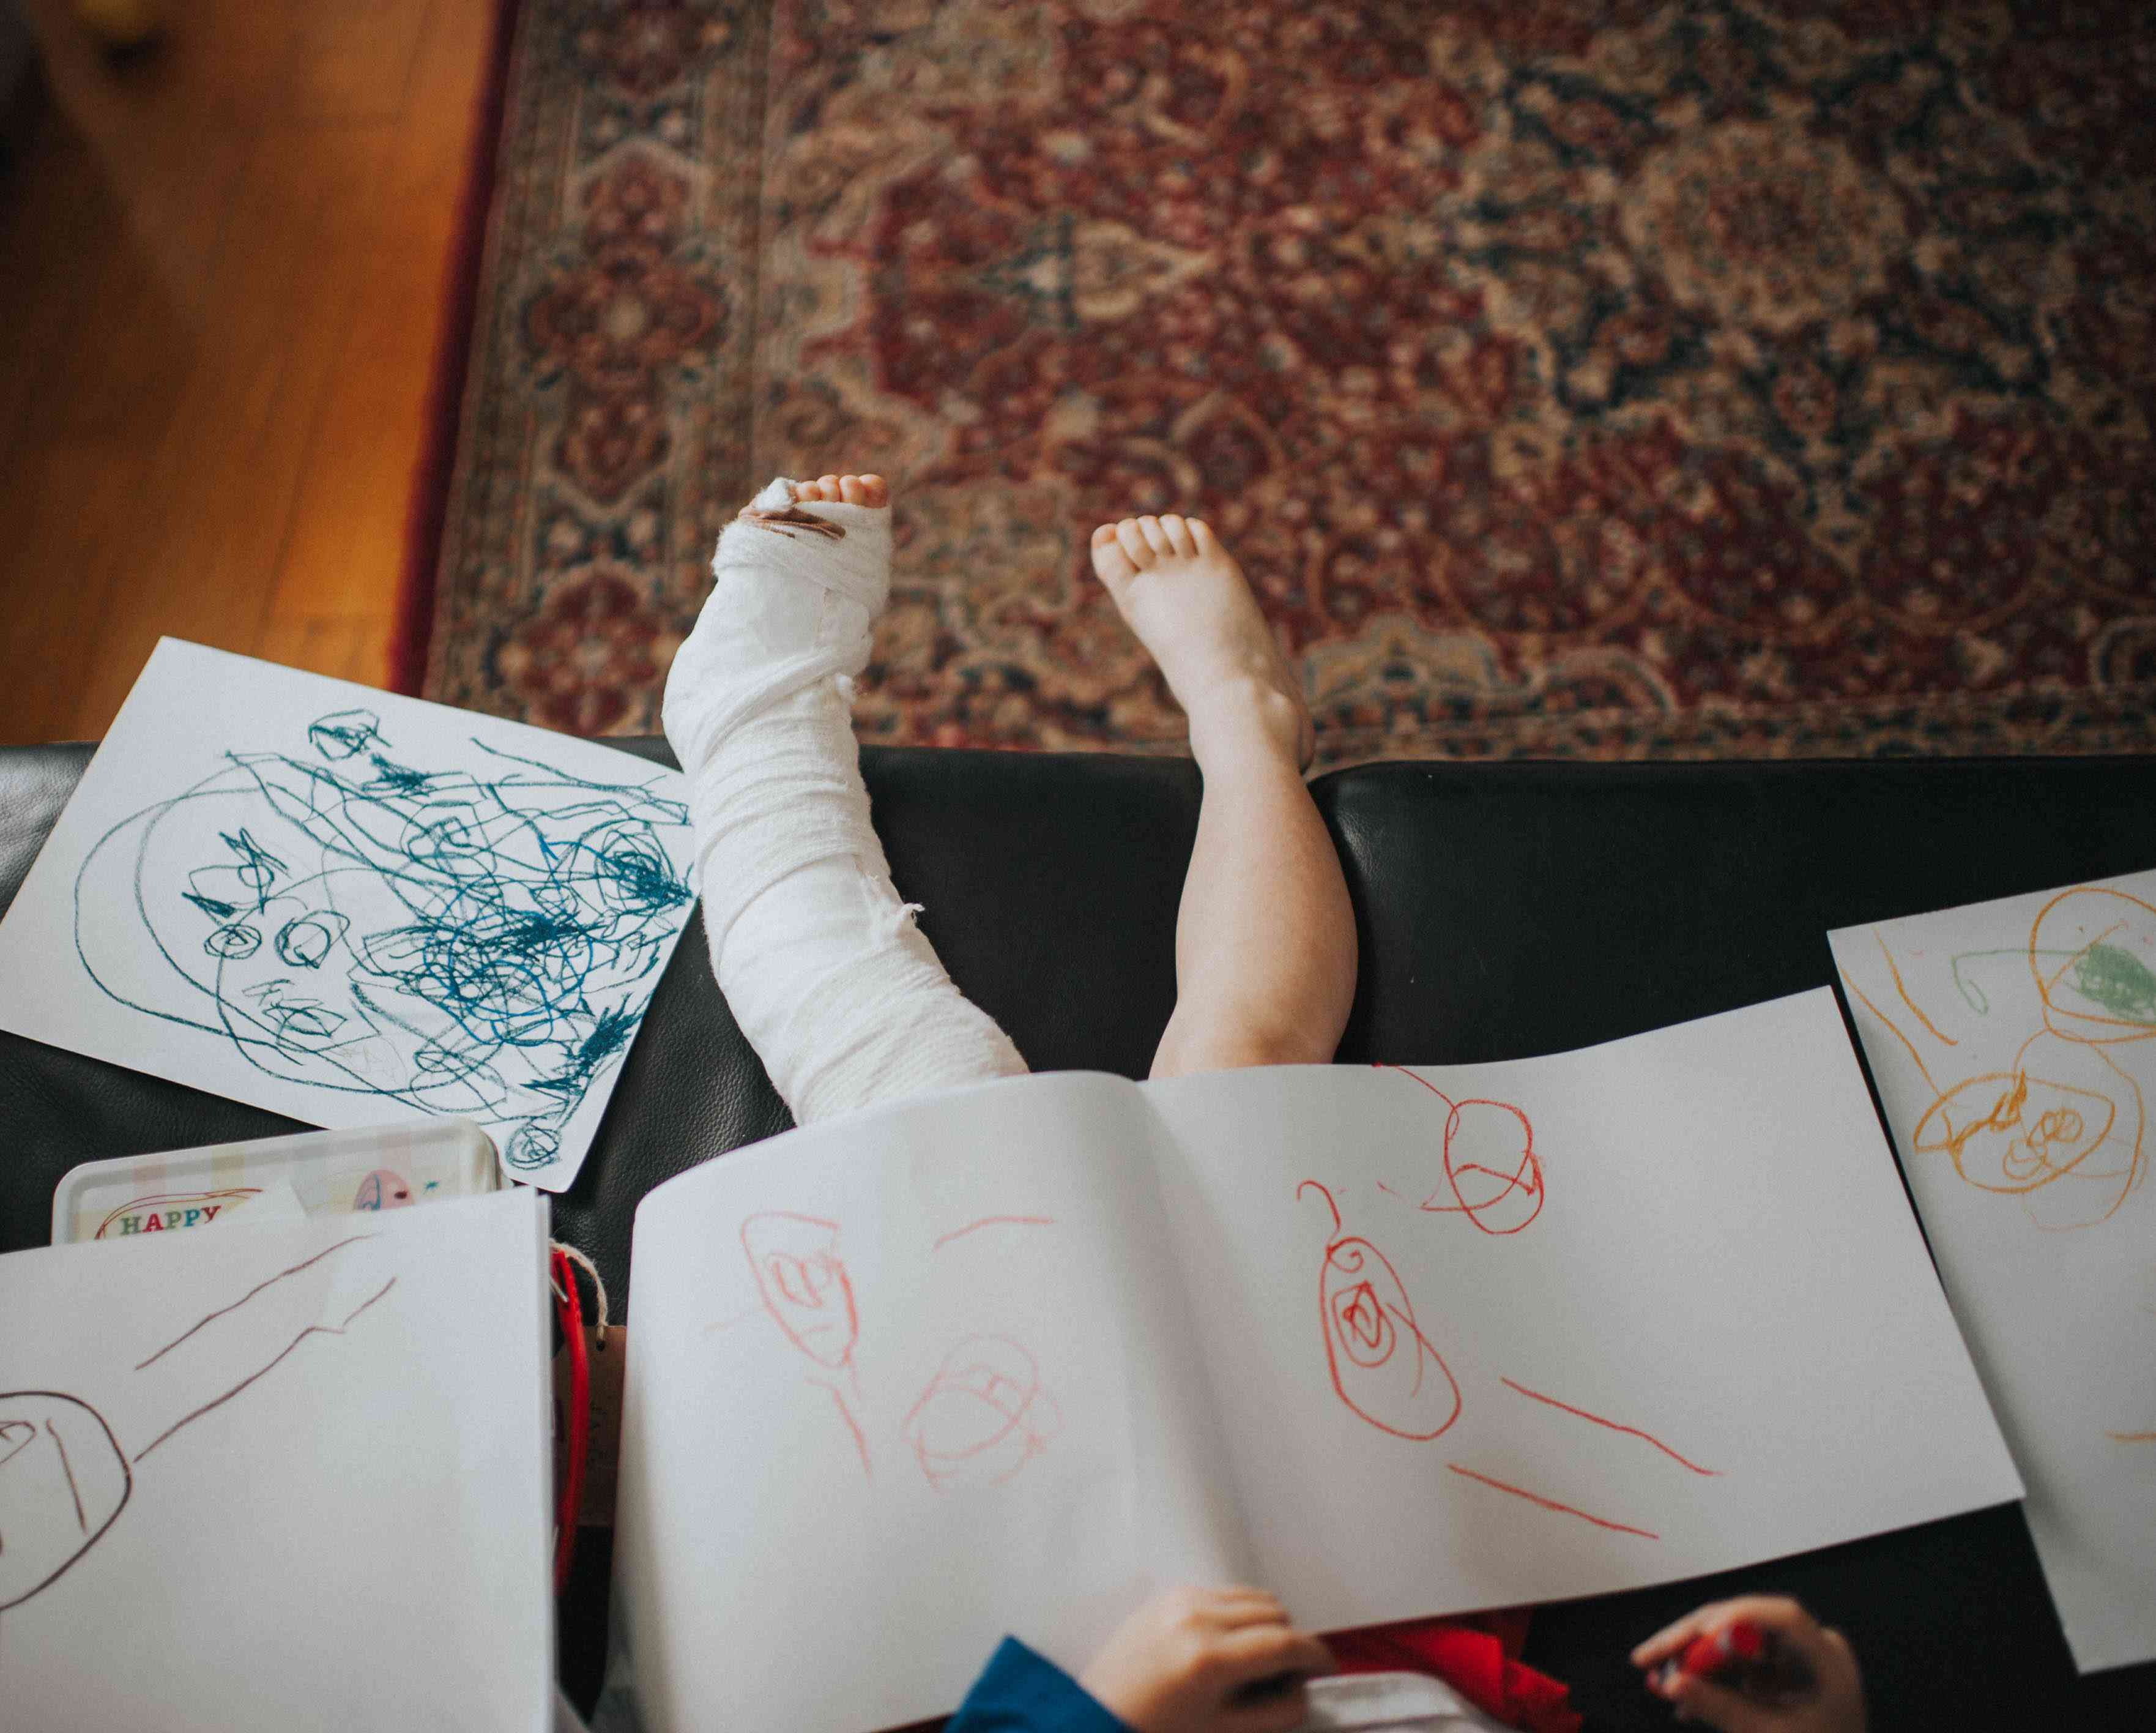 Child with broken leg and plaster cast, drawing